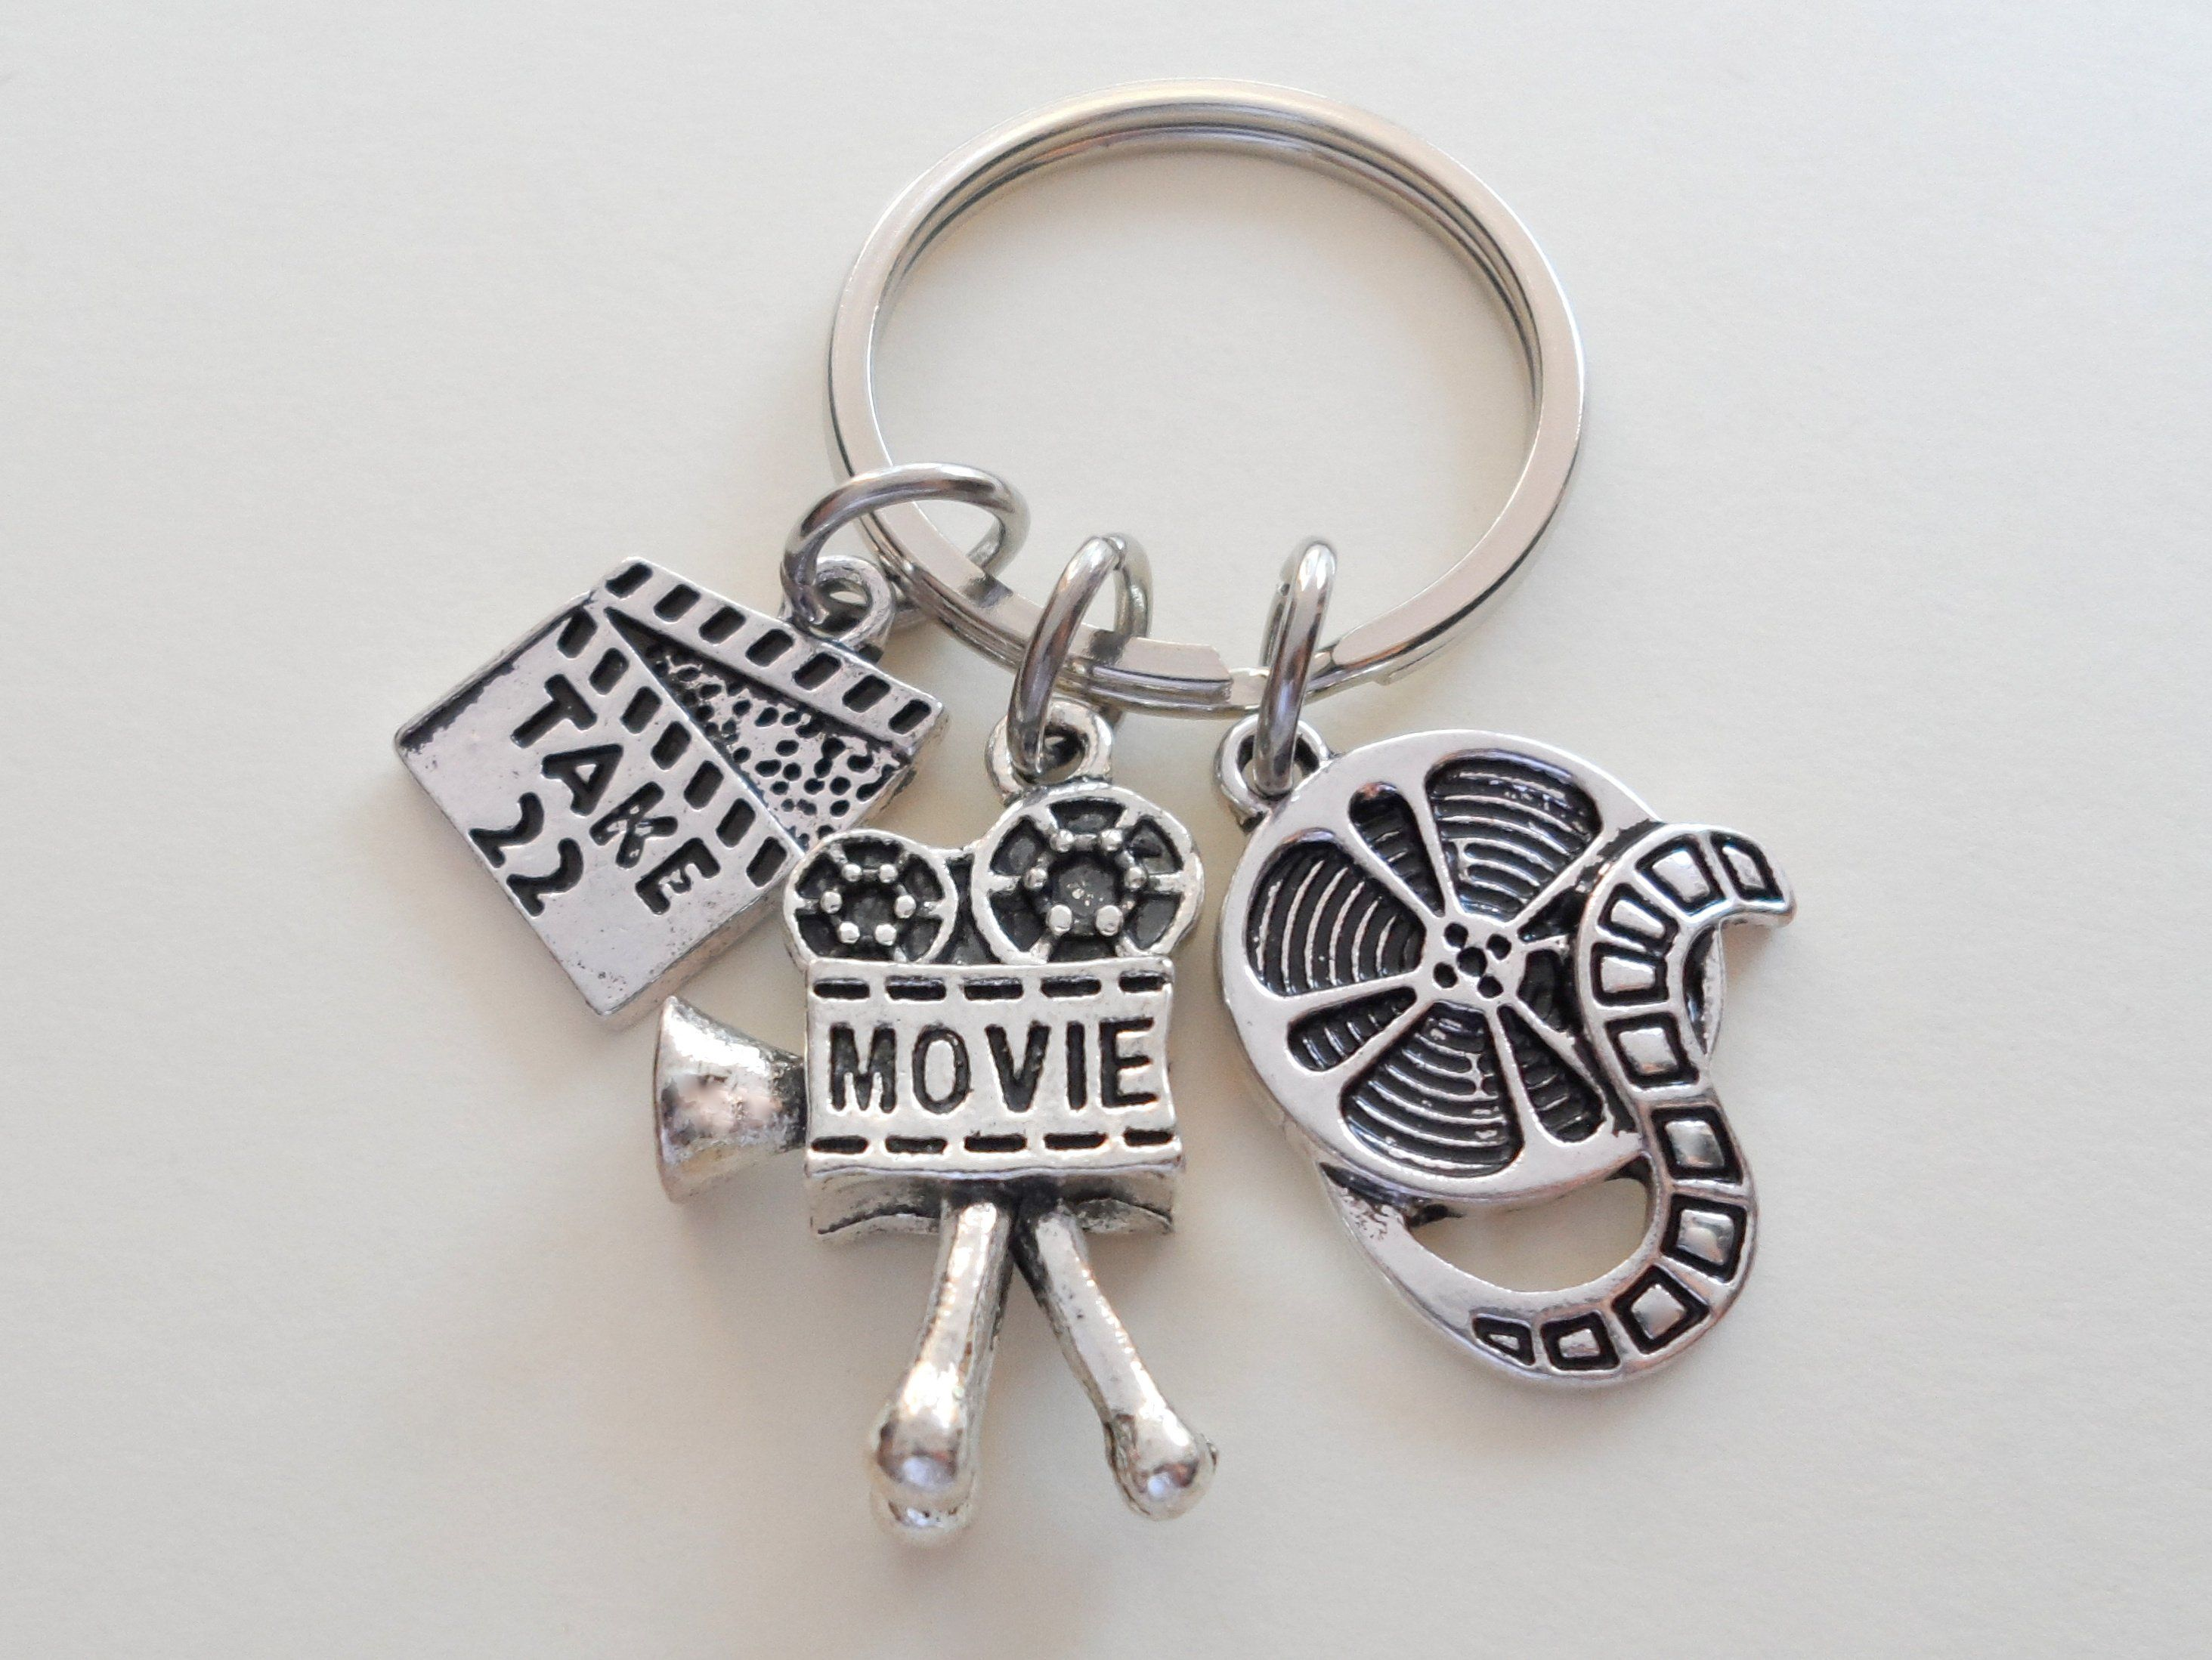 Cinema Producer Small Silver Movie Film Reel Charm Earrings on Hooks or Leverbacks Actor Theatre Director